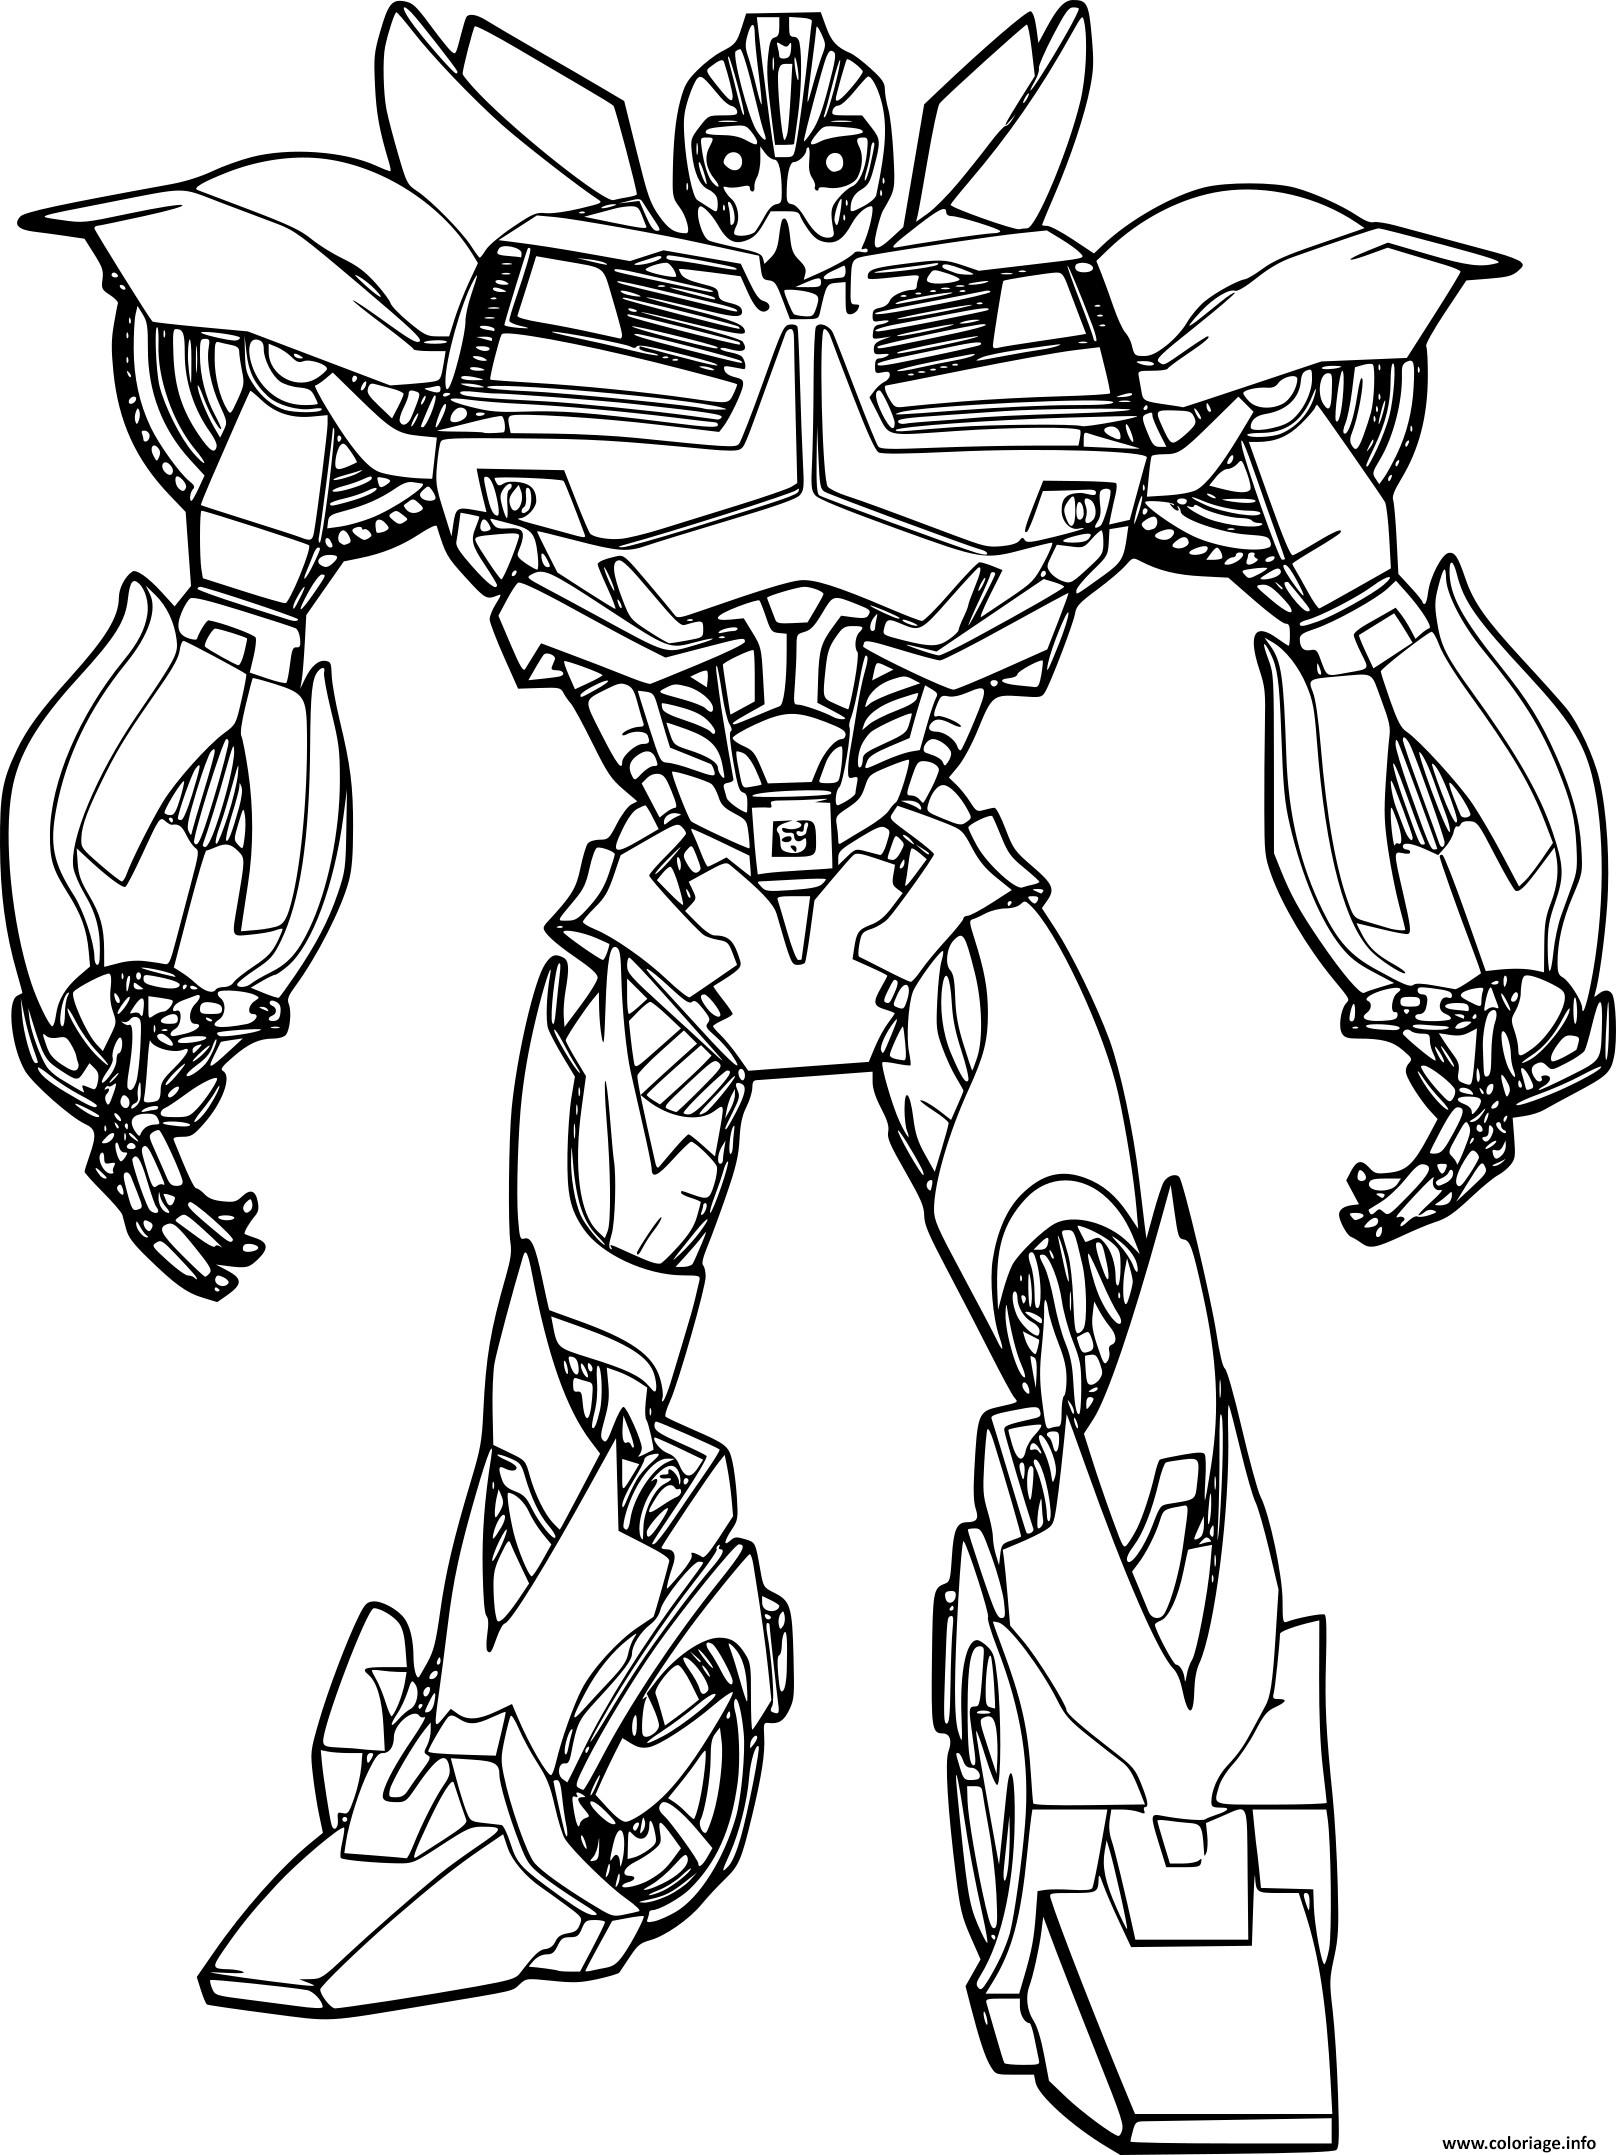 Coloriage Transformers Bumble Bee Dessin